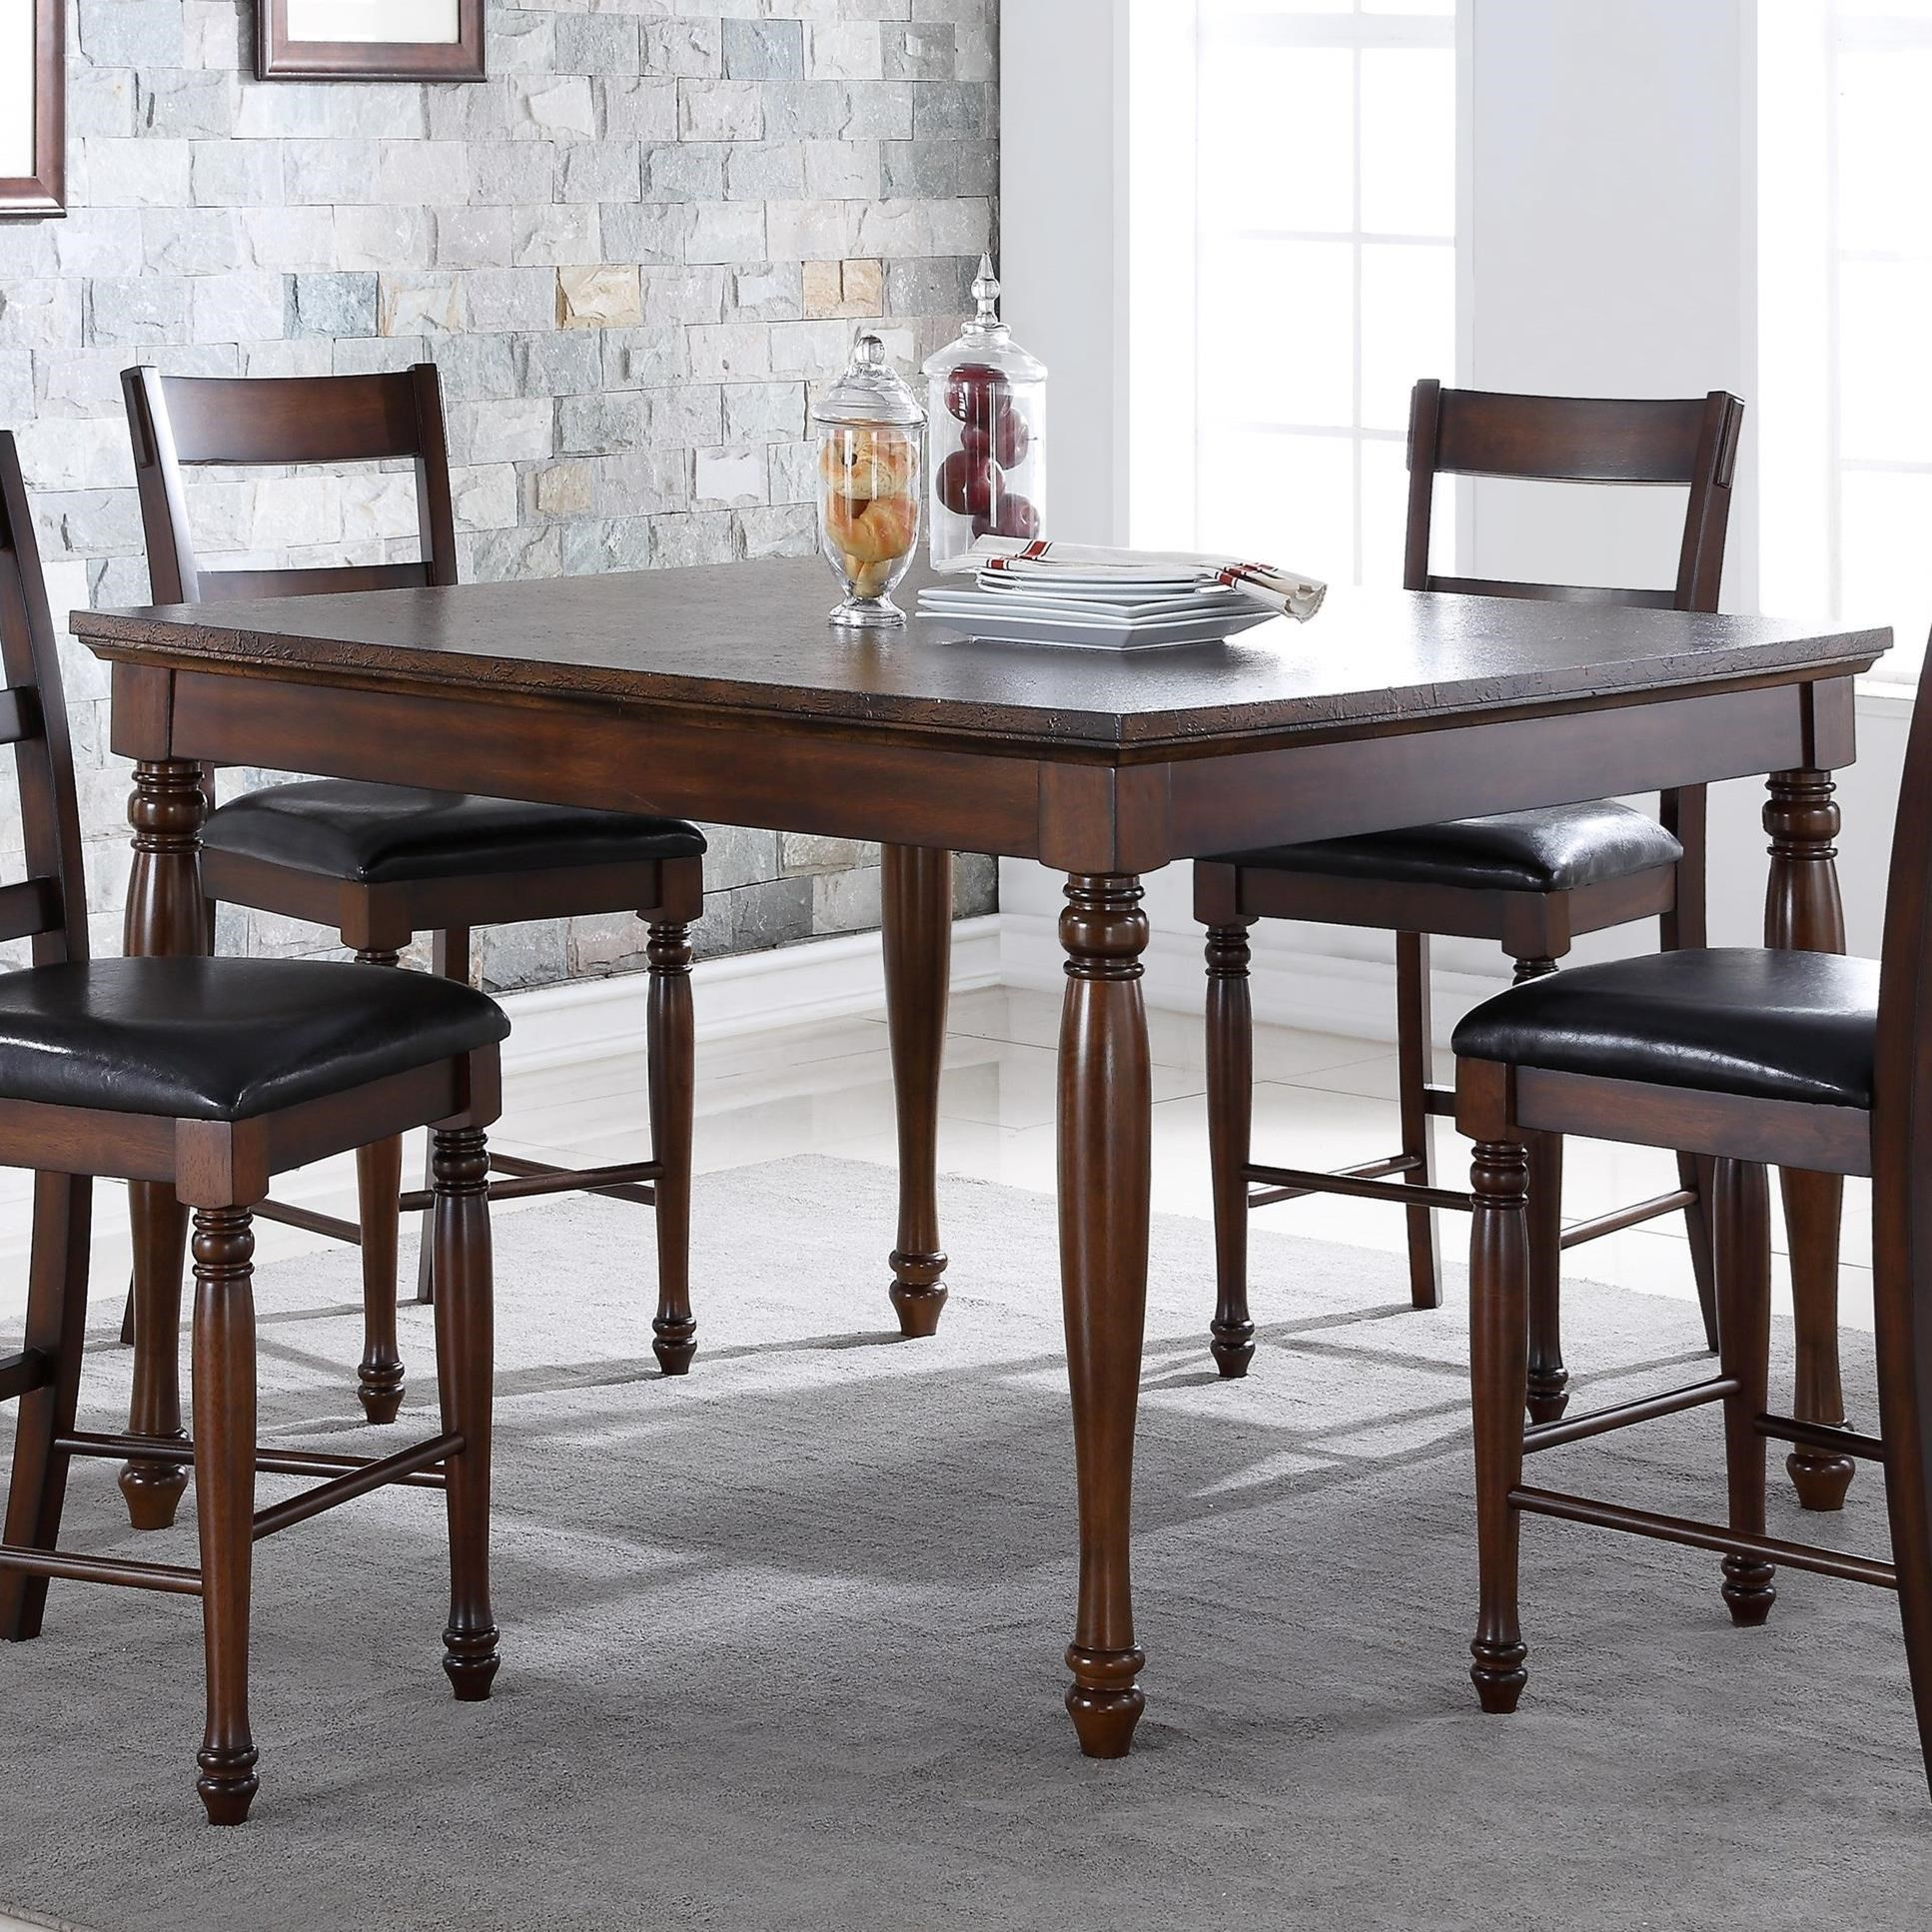 "Legends Furniture Breckenridge Breckenridge 54"" Counter Height Table - Item Number: ZBRG-8000"